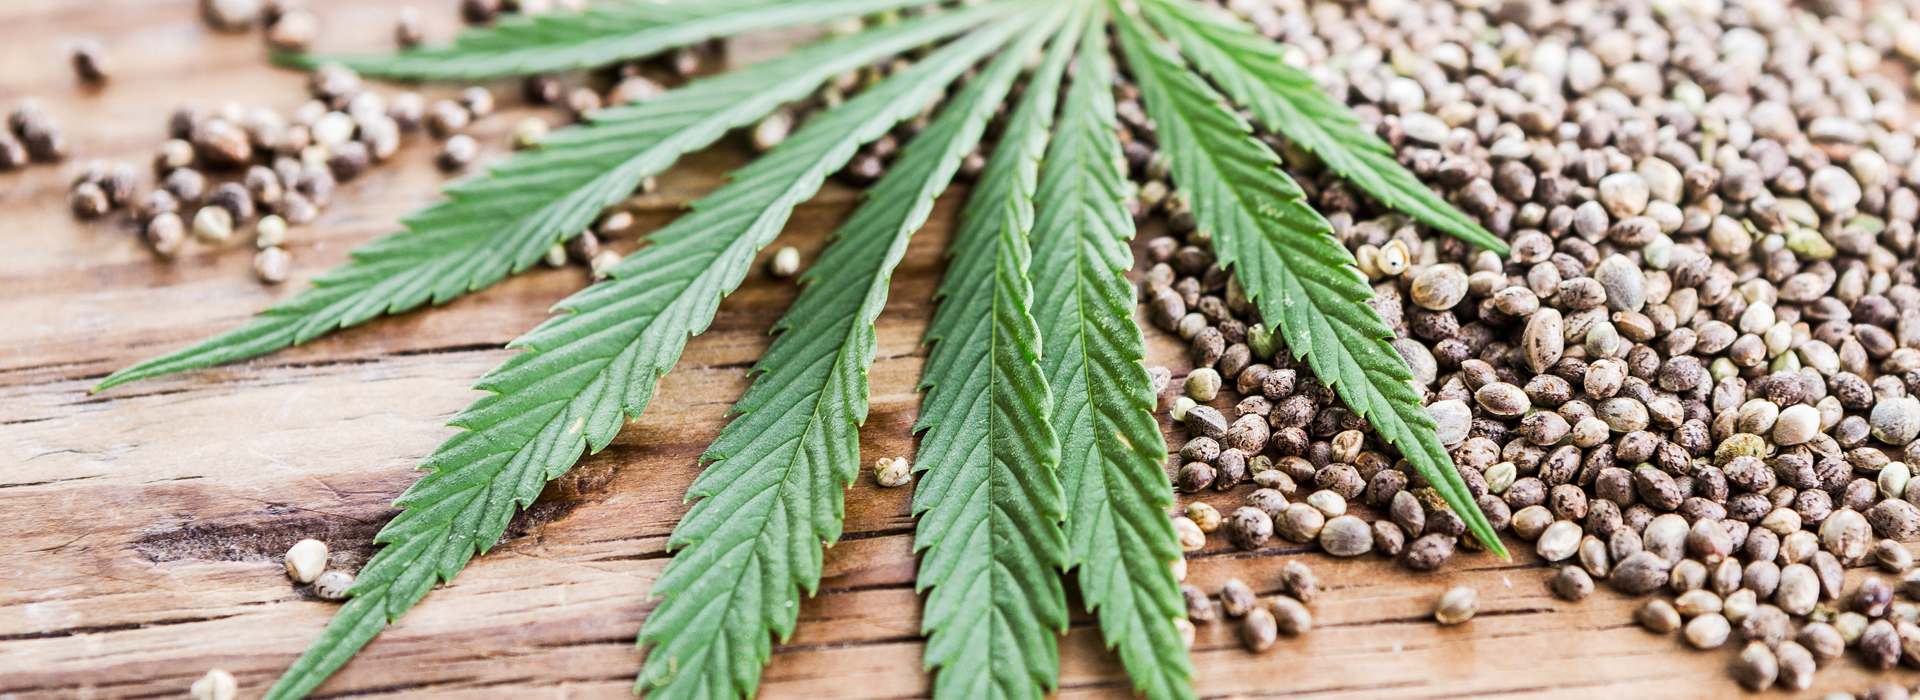 Closeup of hemp cannabis leaf and seeds